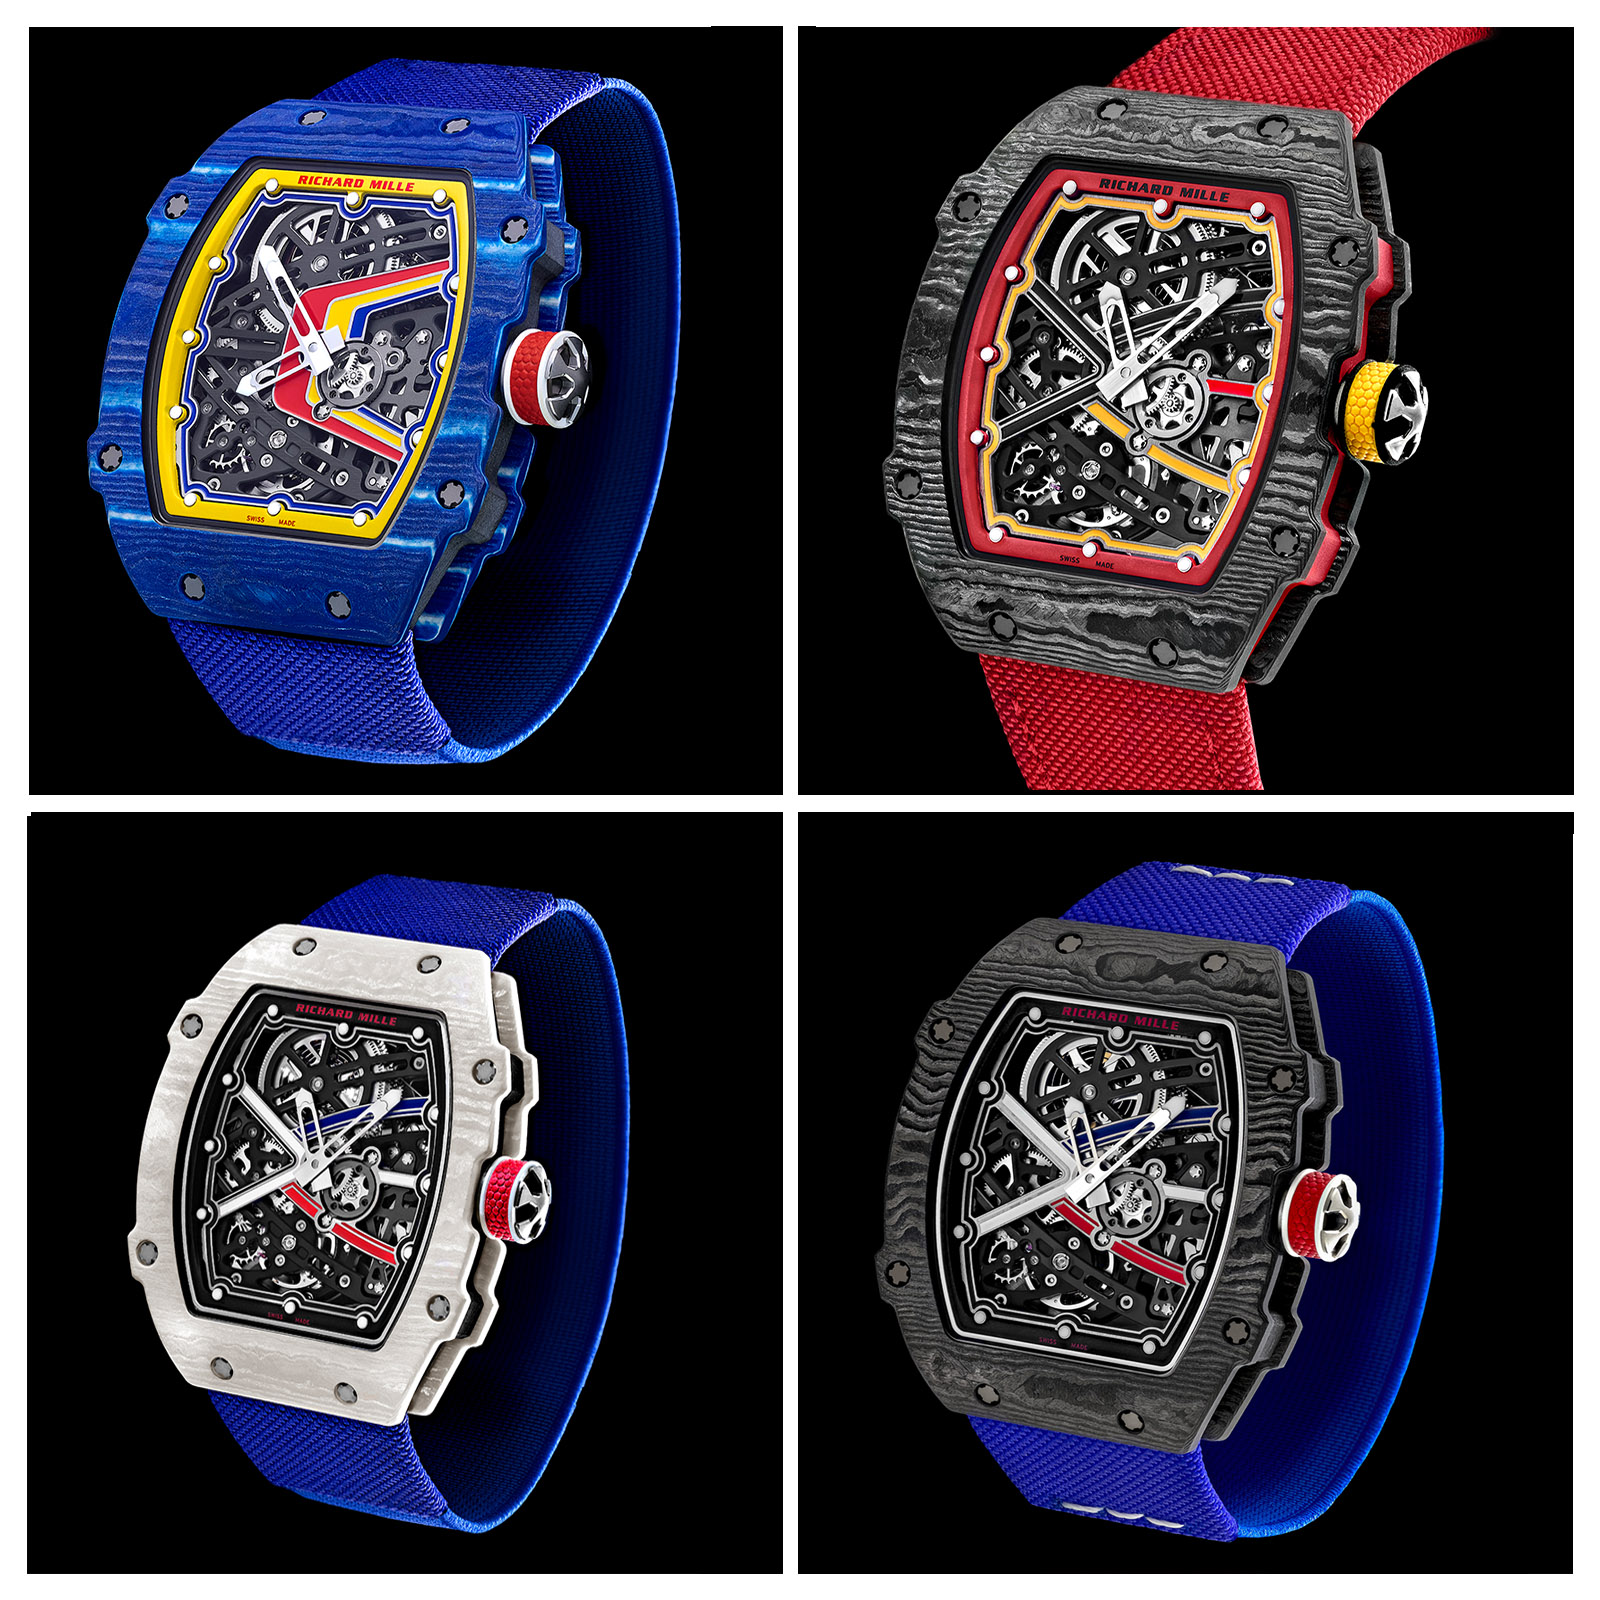 Richard Mille Introduces The RM 67 02 U2013 In Four New